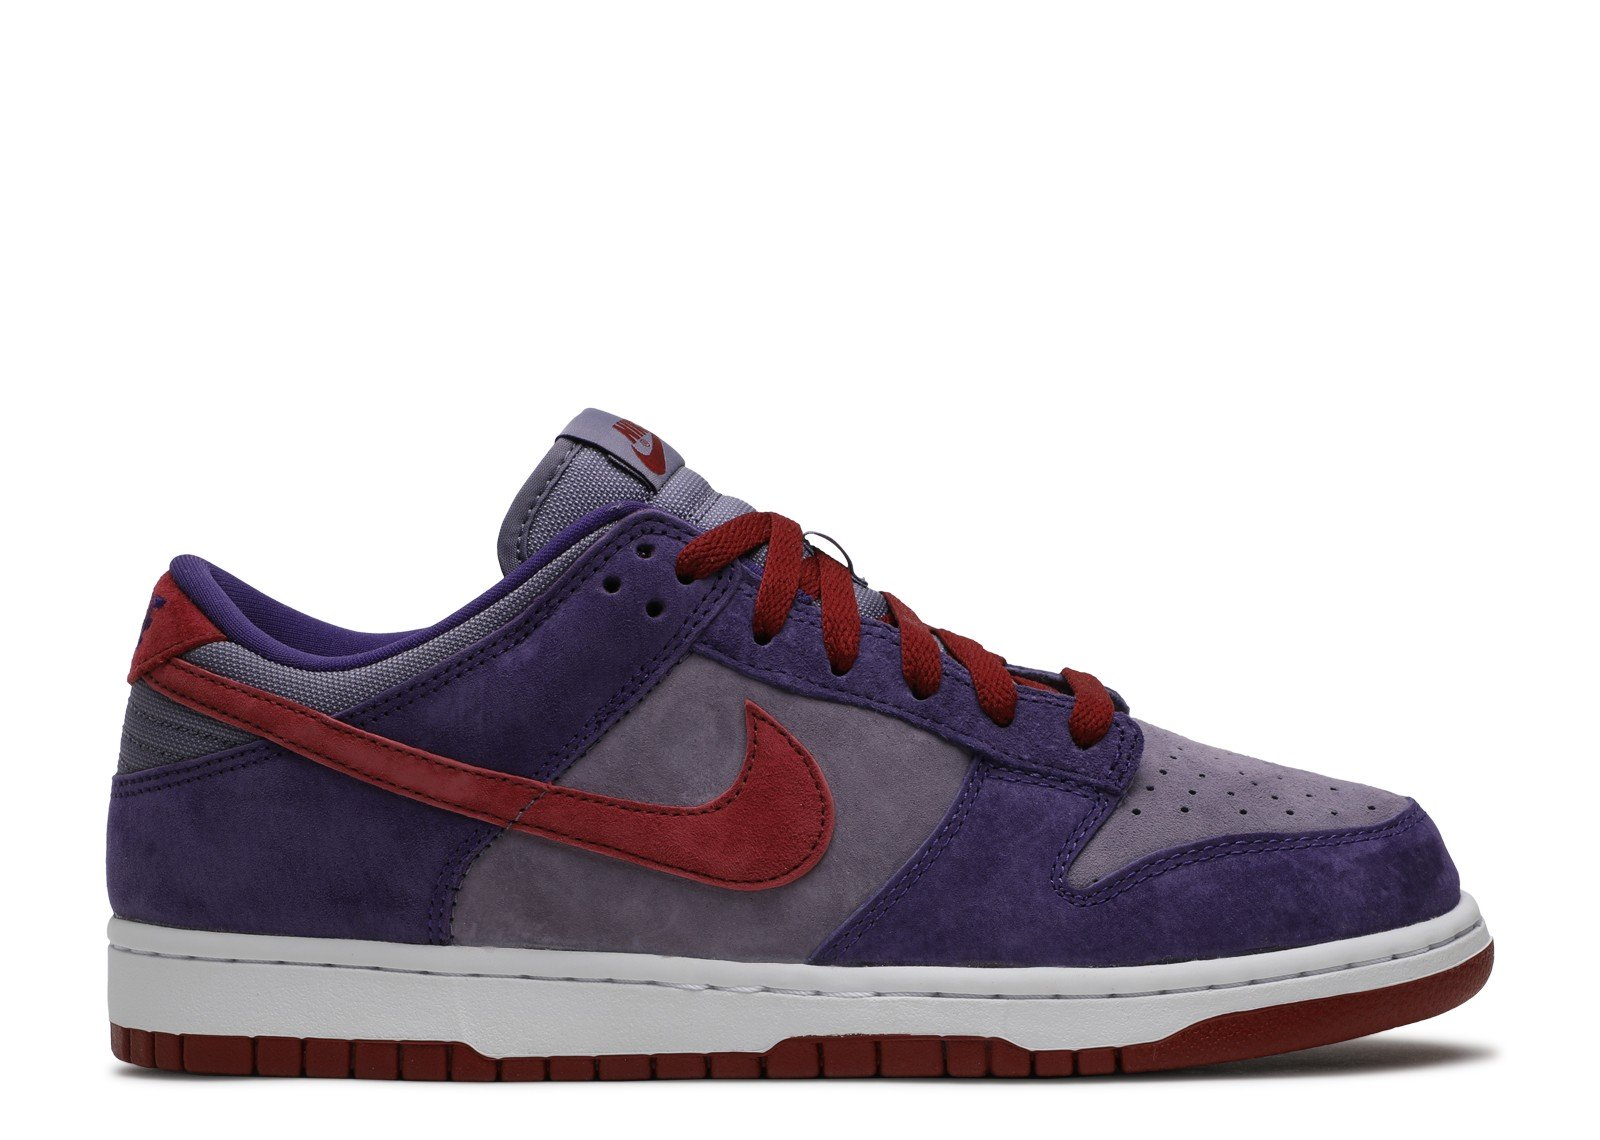 Nike Dunk Low Plum (2020) - CookiesandKicksLA